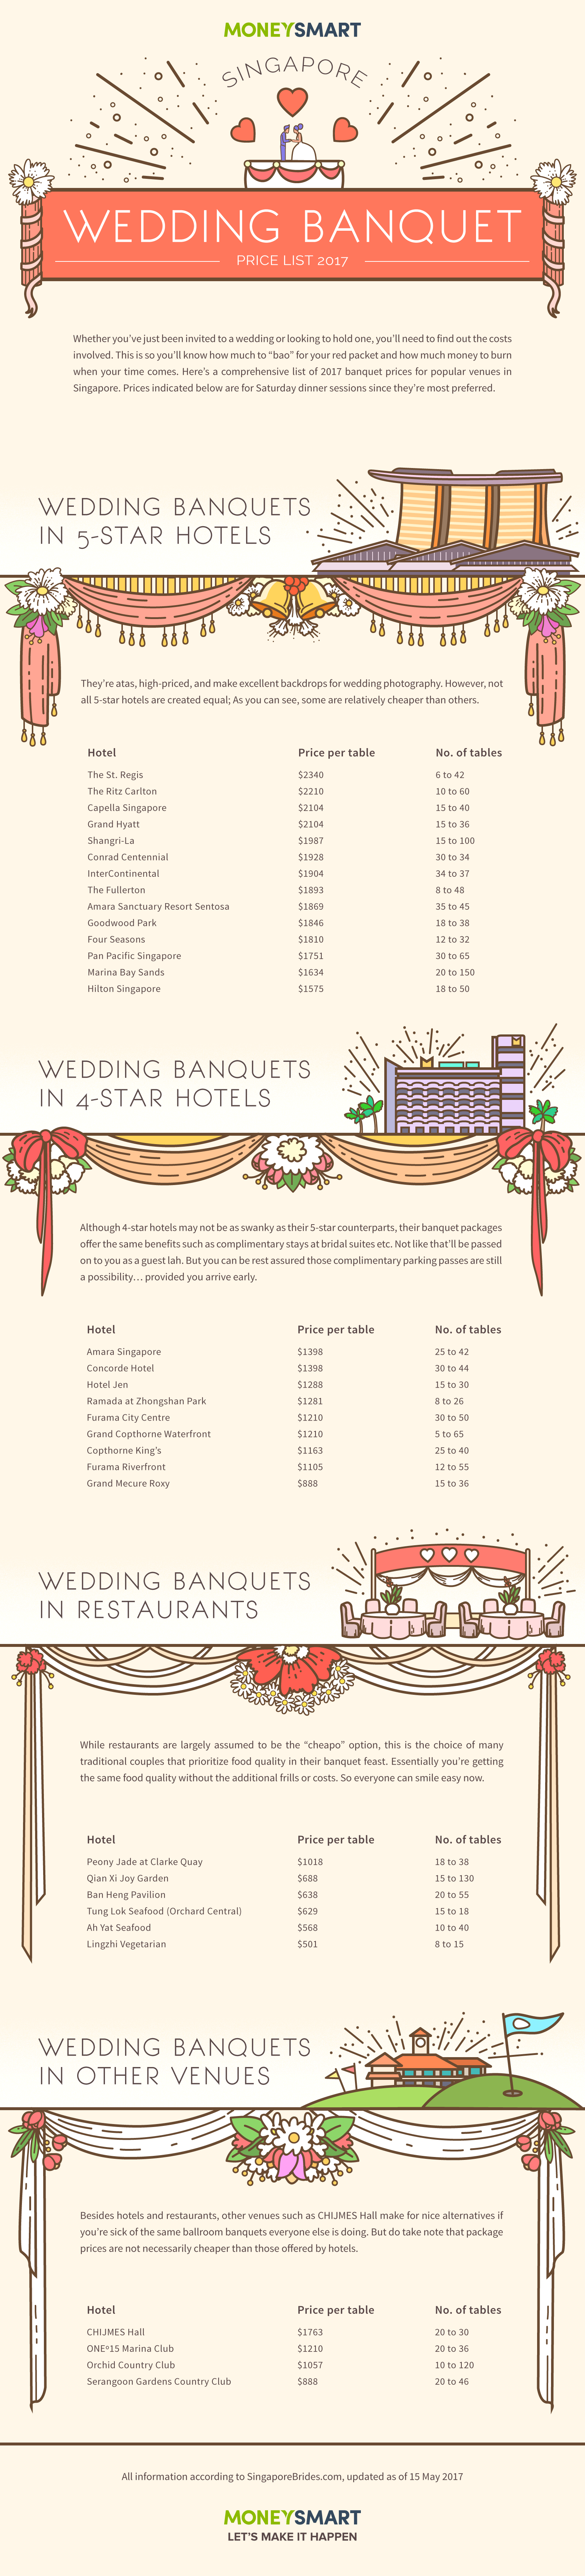 wedding banquet 2017 singapore infographic